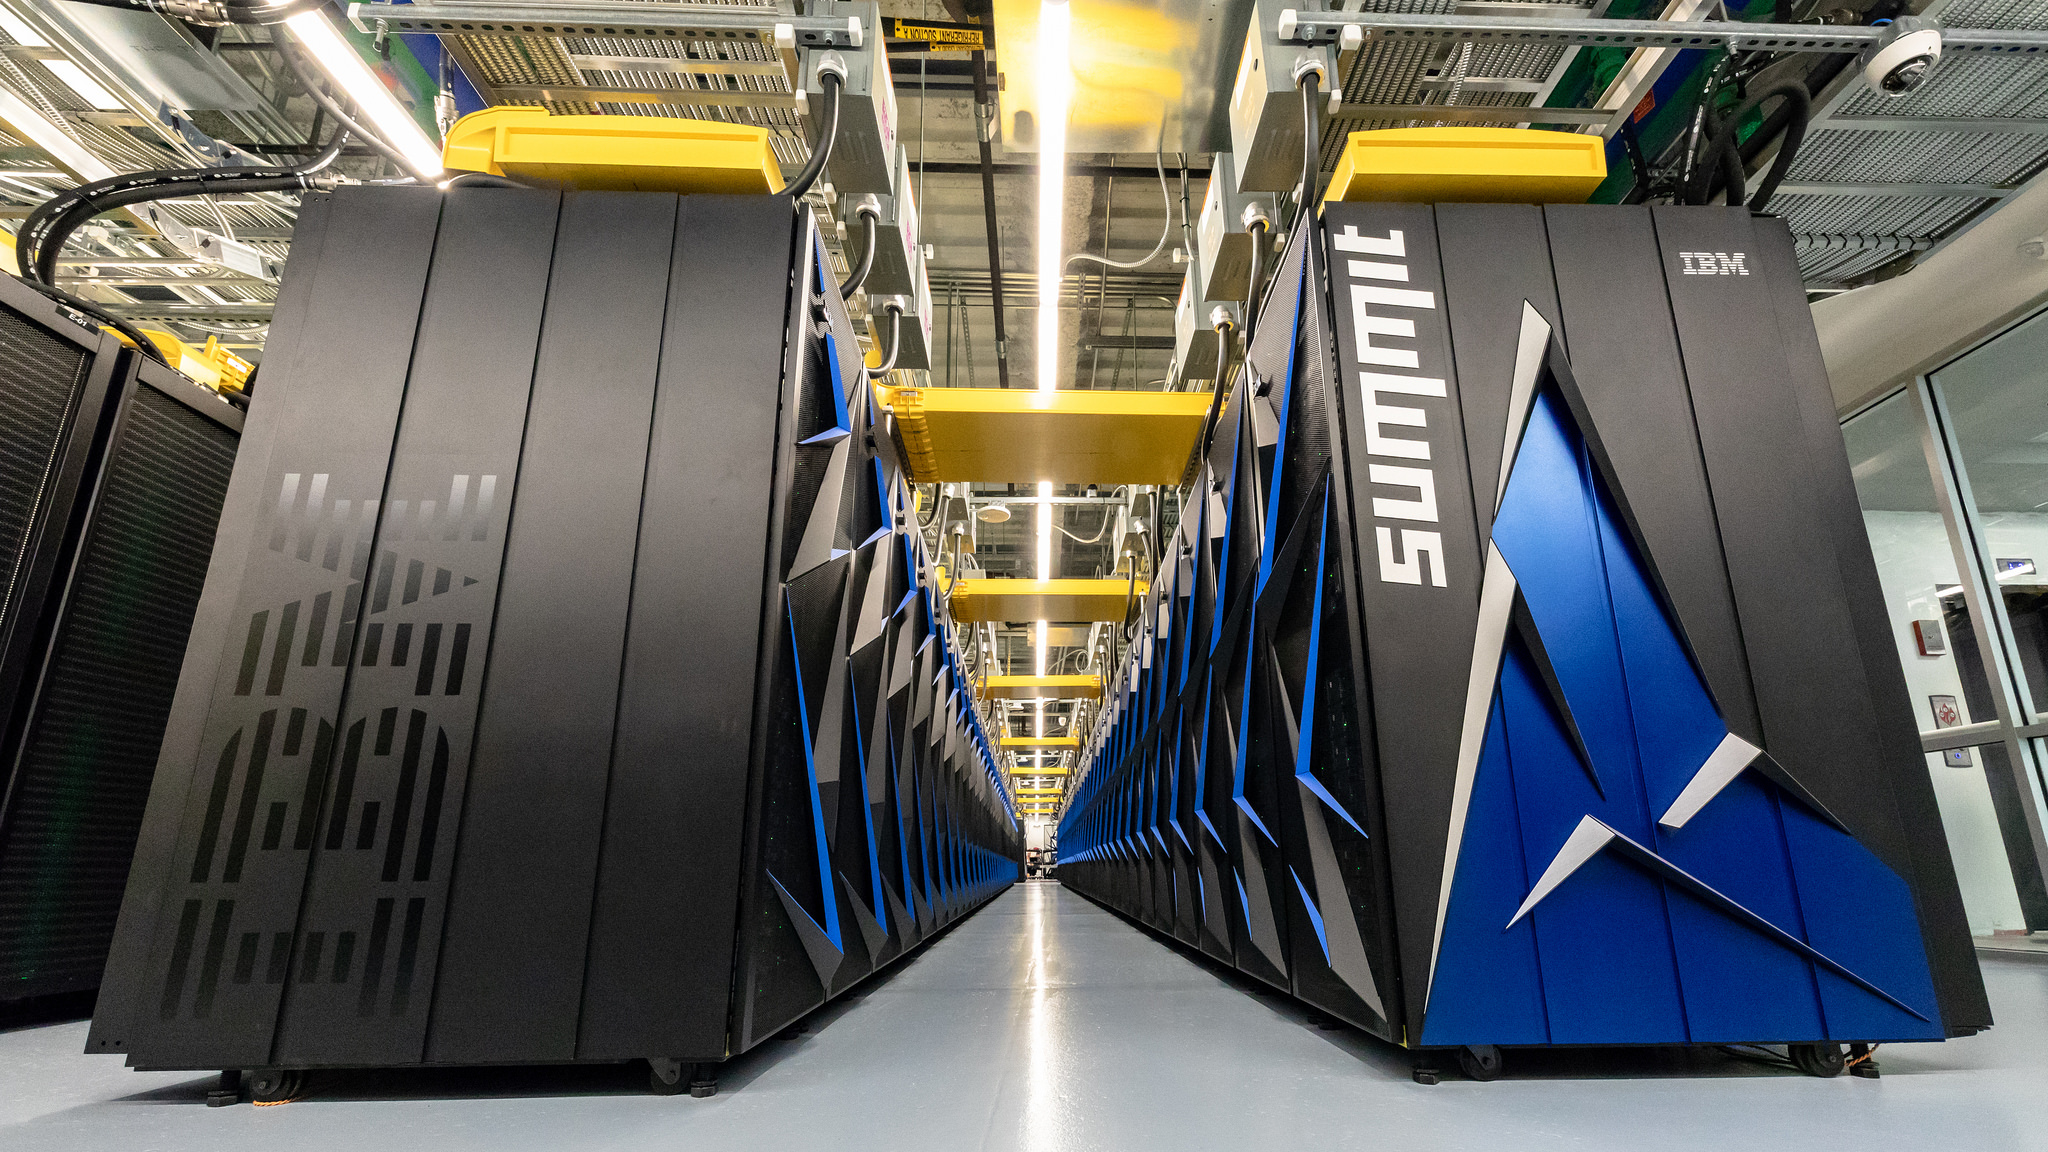 Two rows large black boxes contain supercomputer inside industrial space